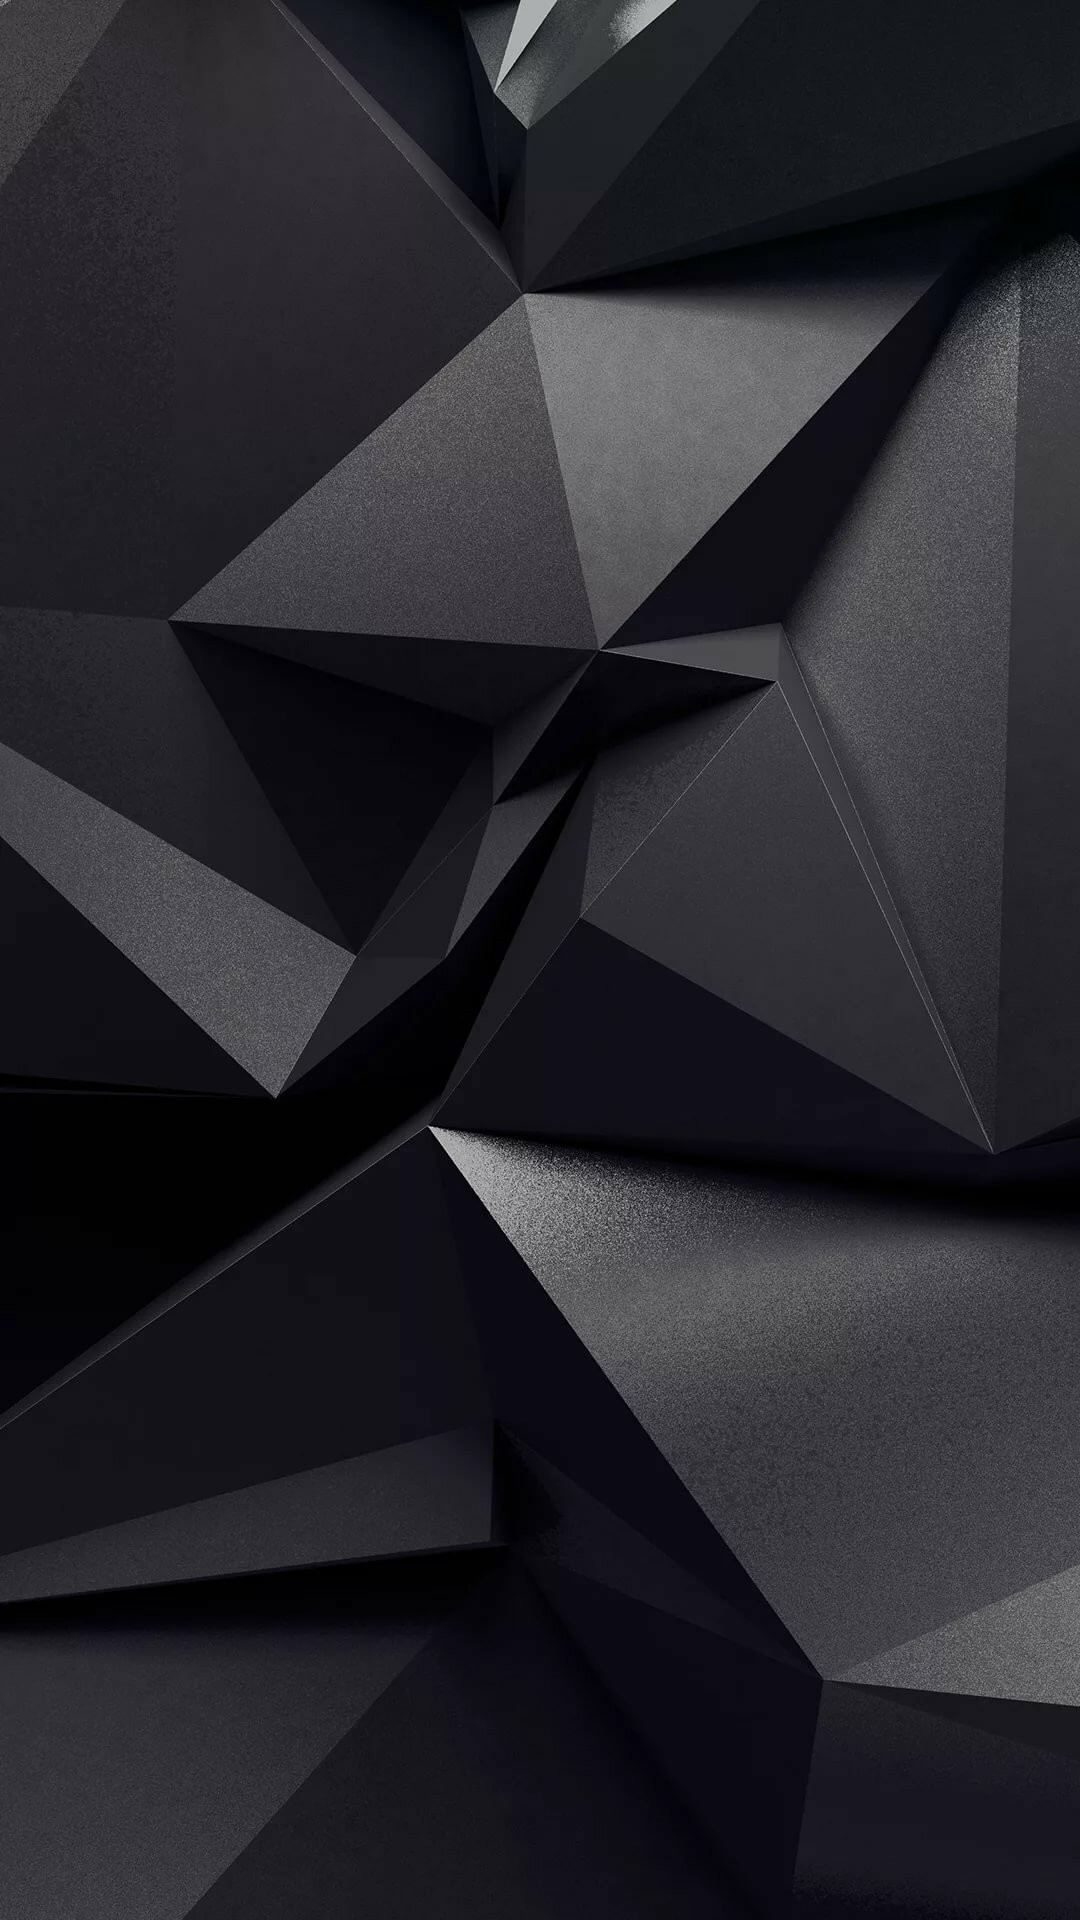 Black And White wallpaper for android